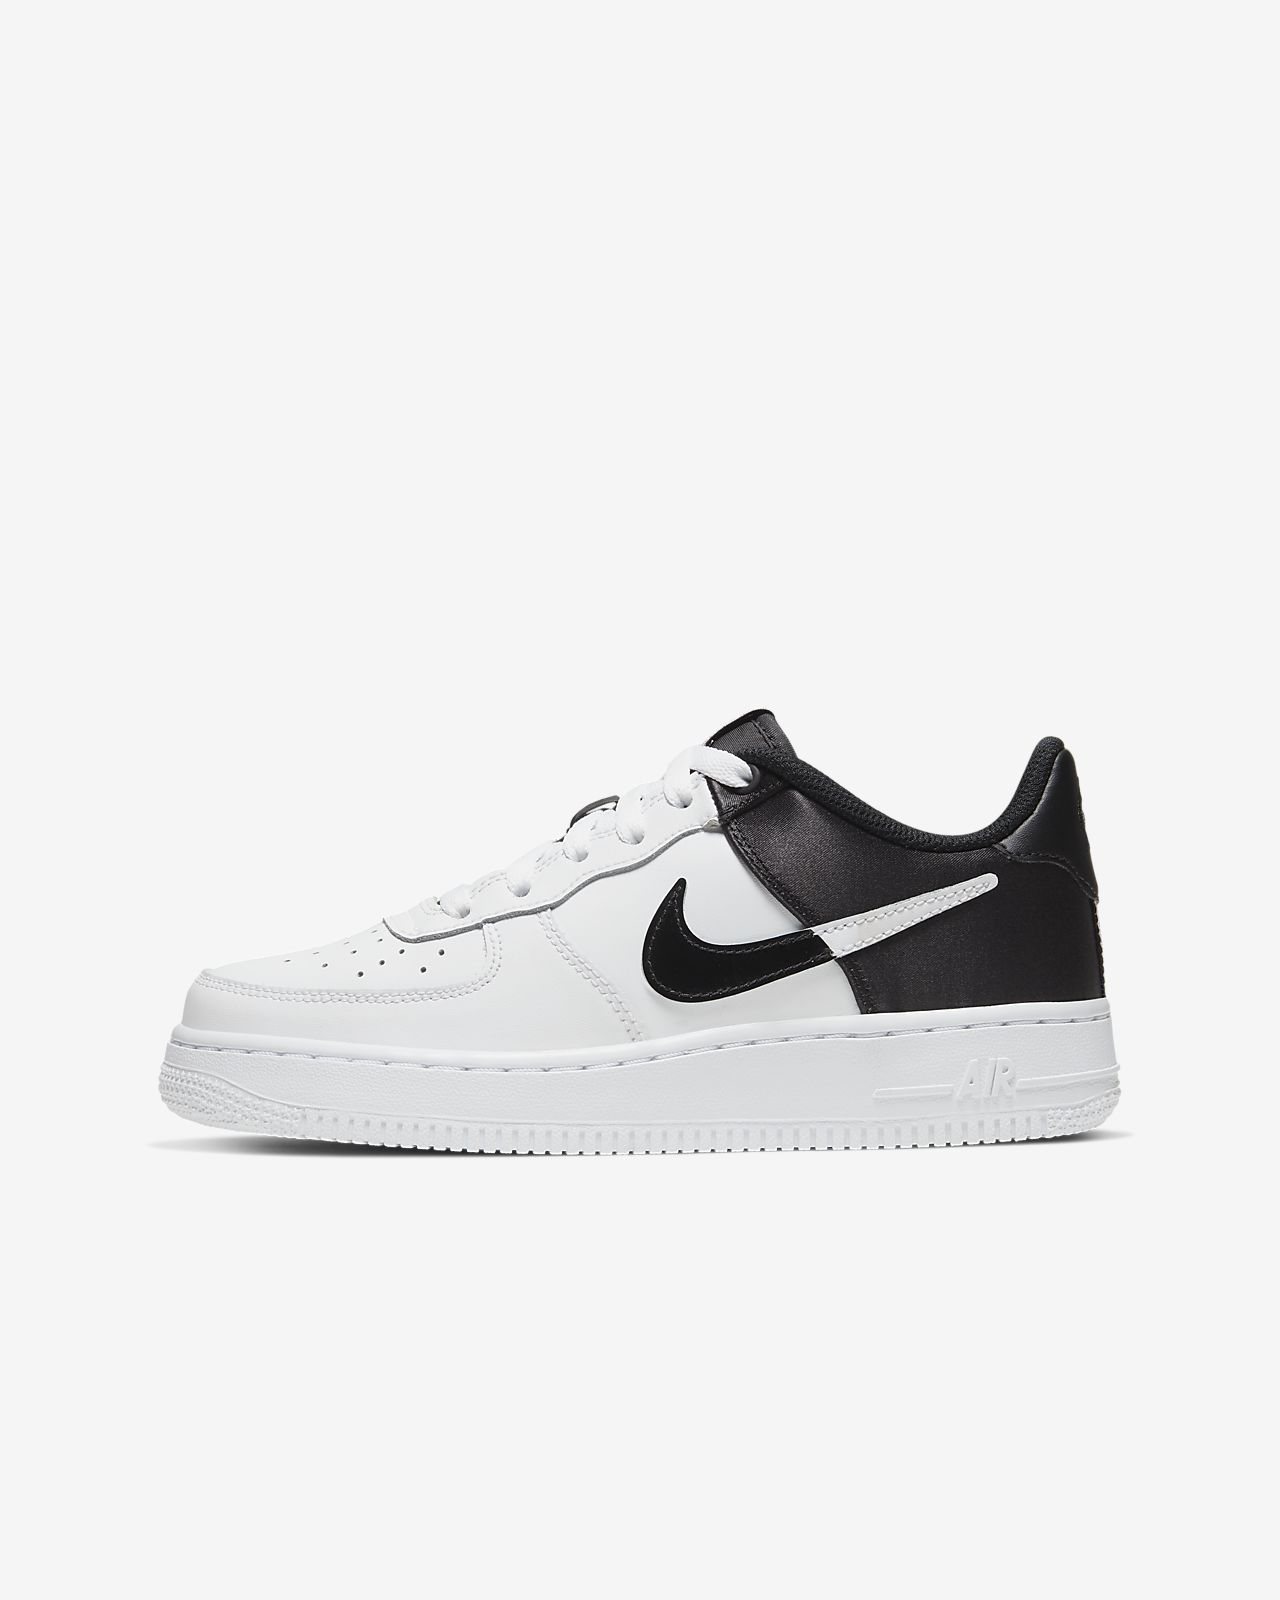 Air Force 1 NBA Low Big Kids' Shoe | Calzas, Zapas y Outfits